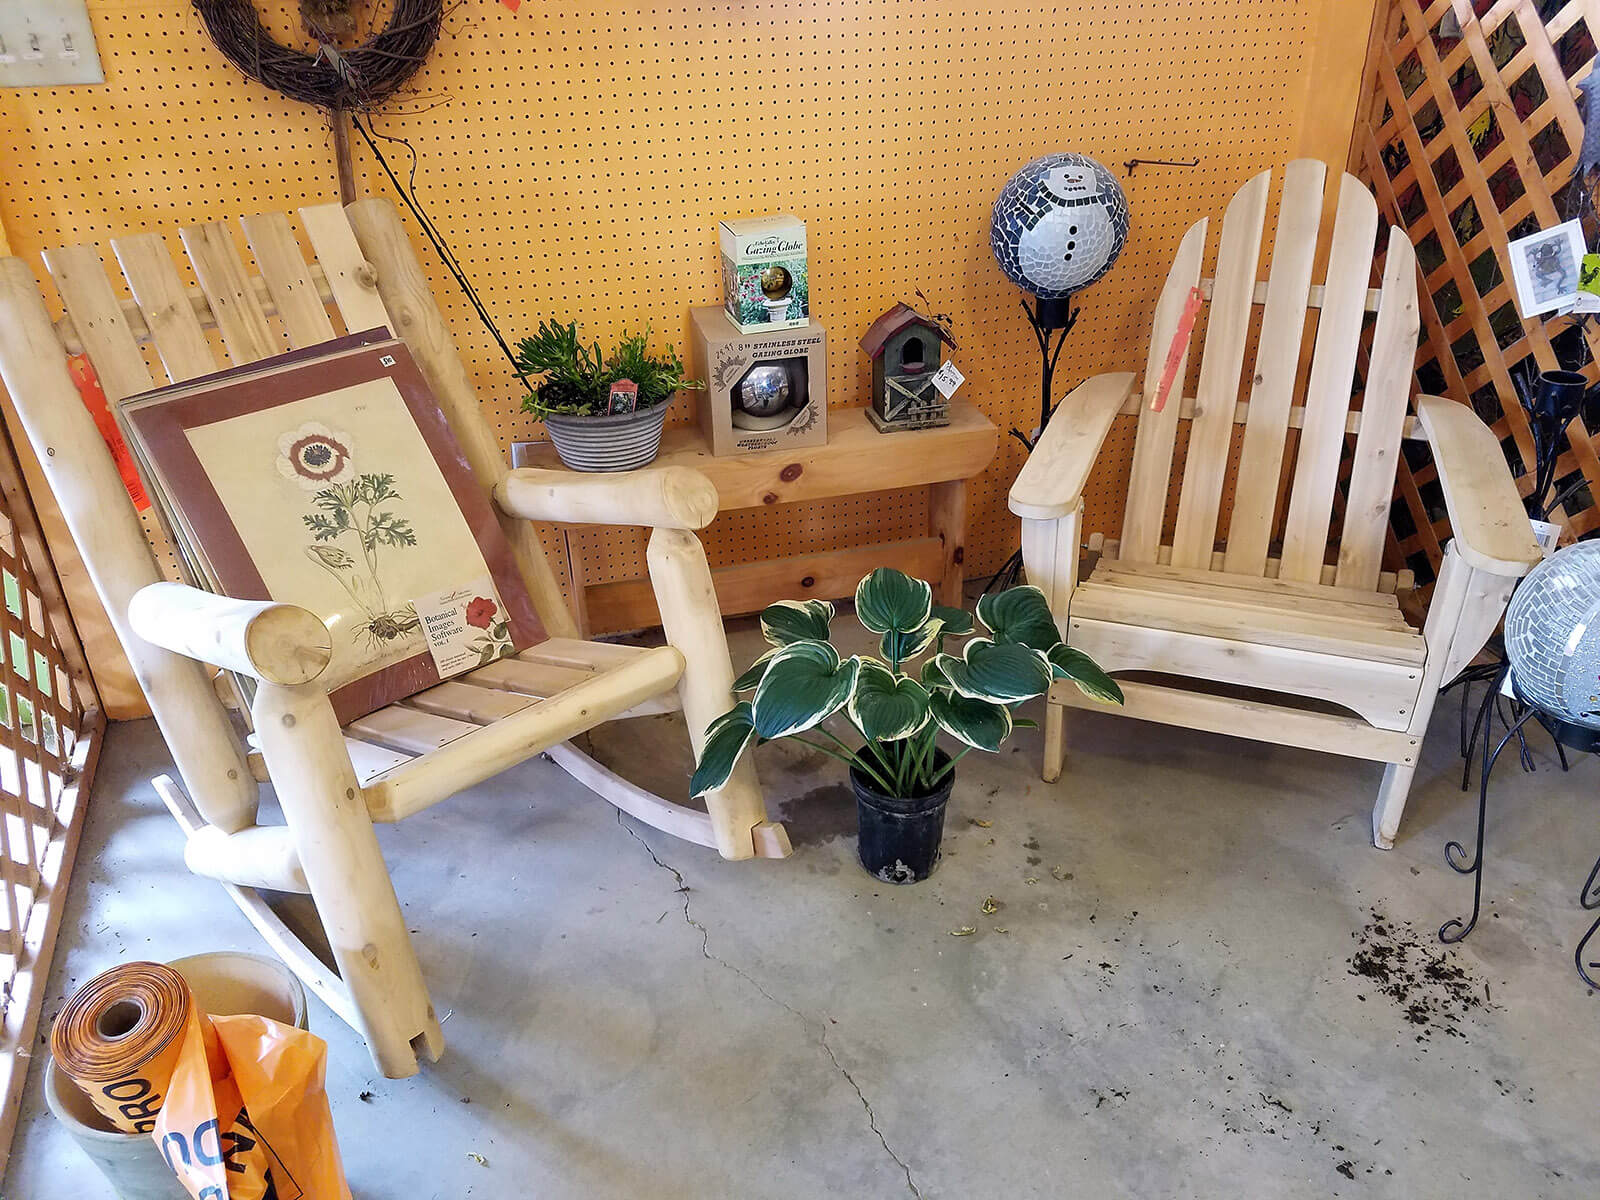 Abell Nursery - Garden Center - Bloomington - Tree Farm - Cedar Patio Furniture Chairs